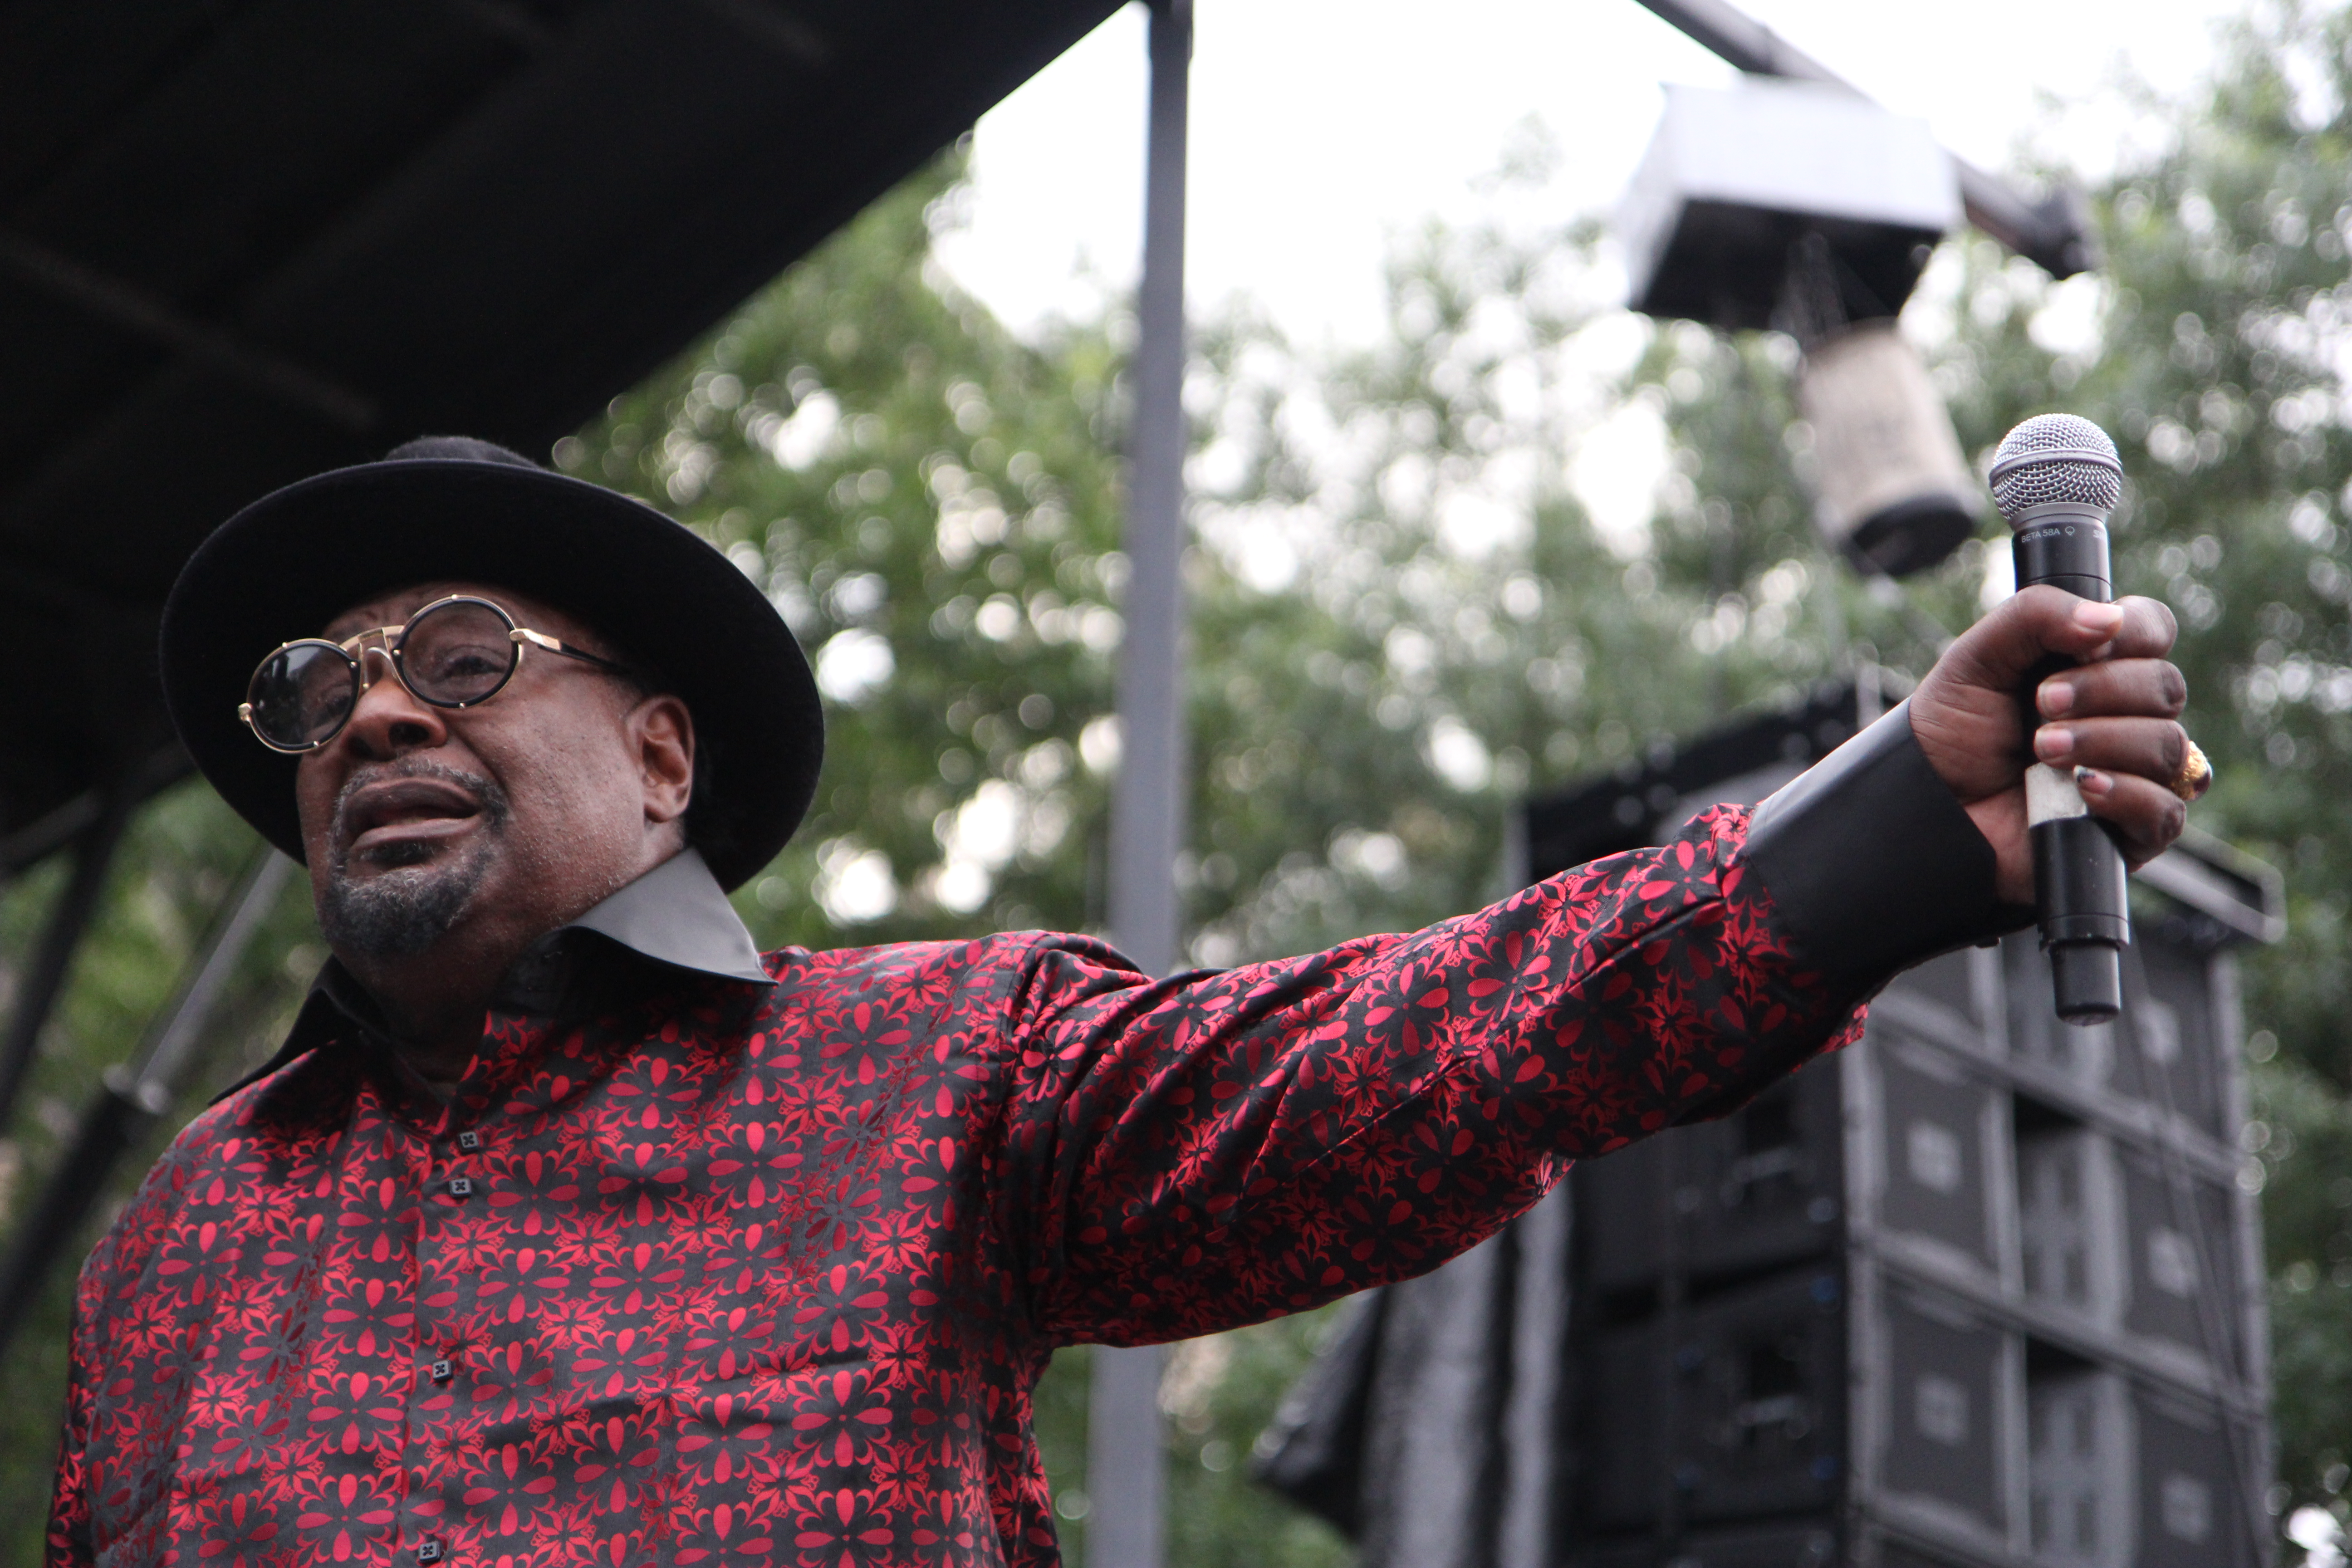 George Clinton brings the funk to Queensbridge Park on July 15, 2015